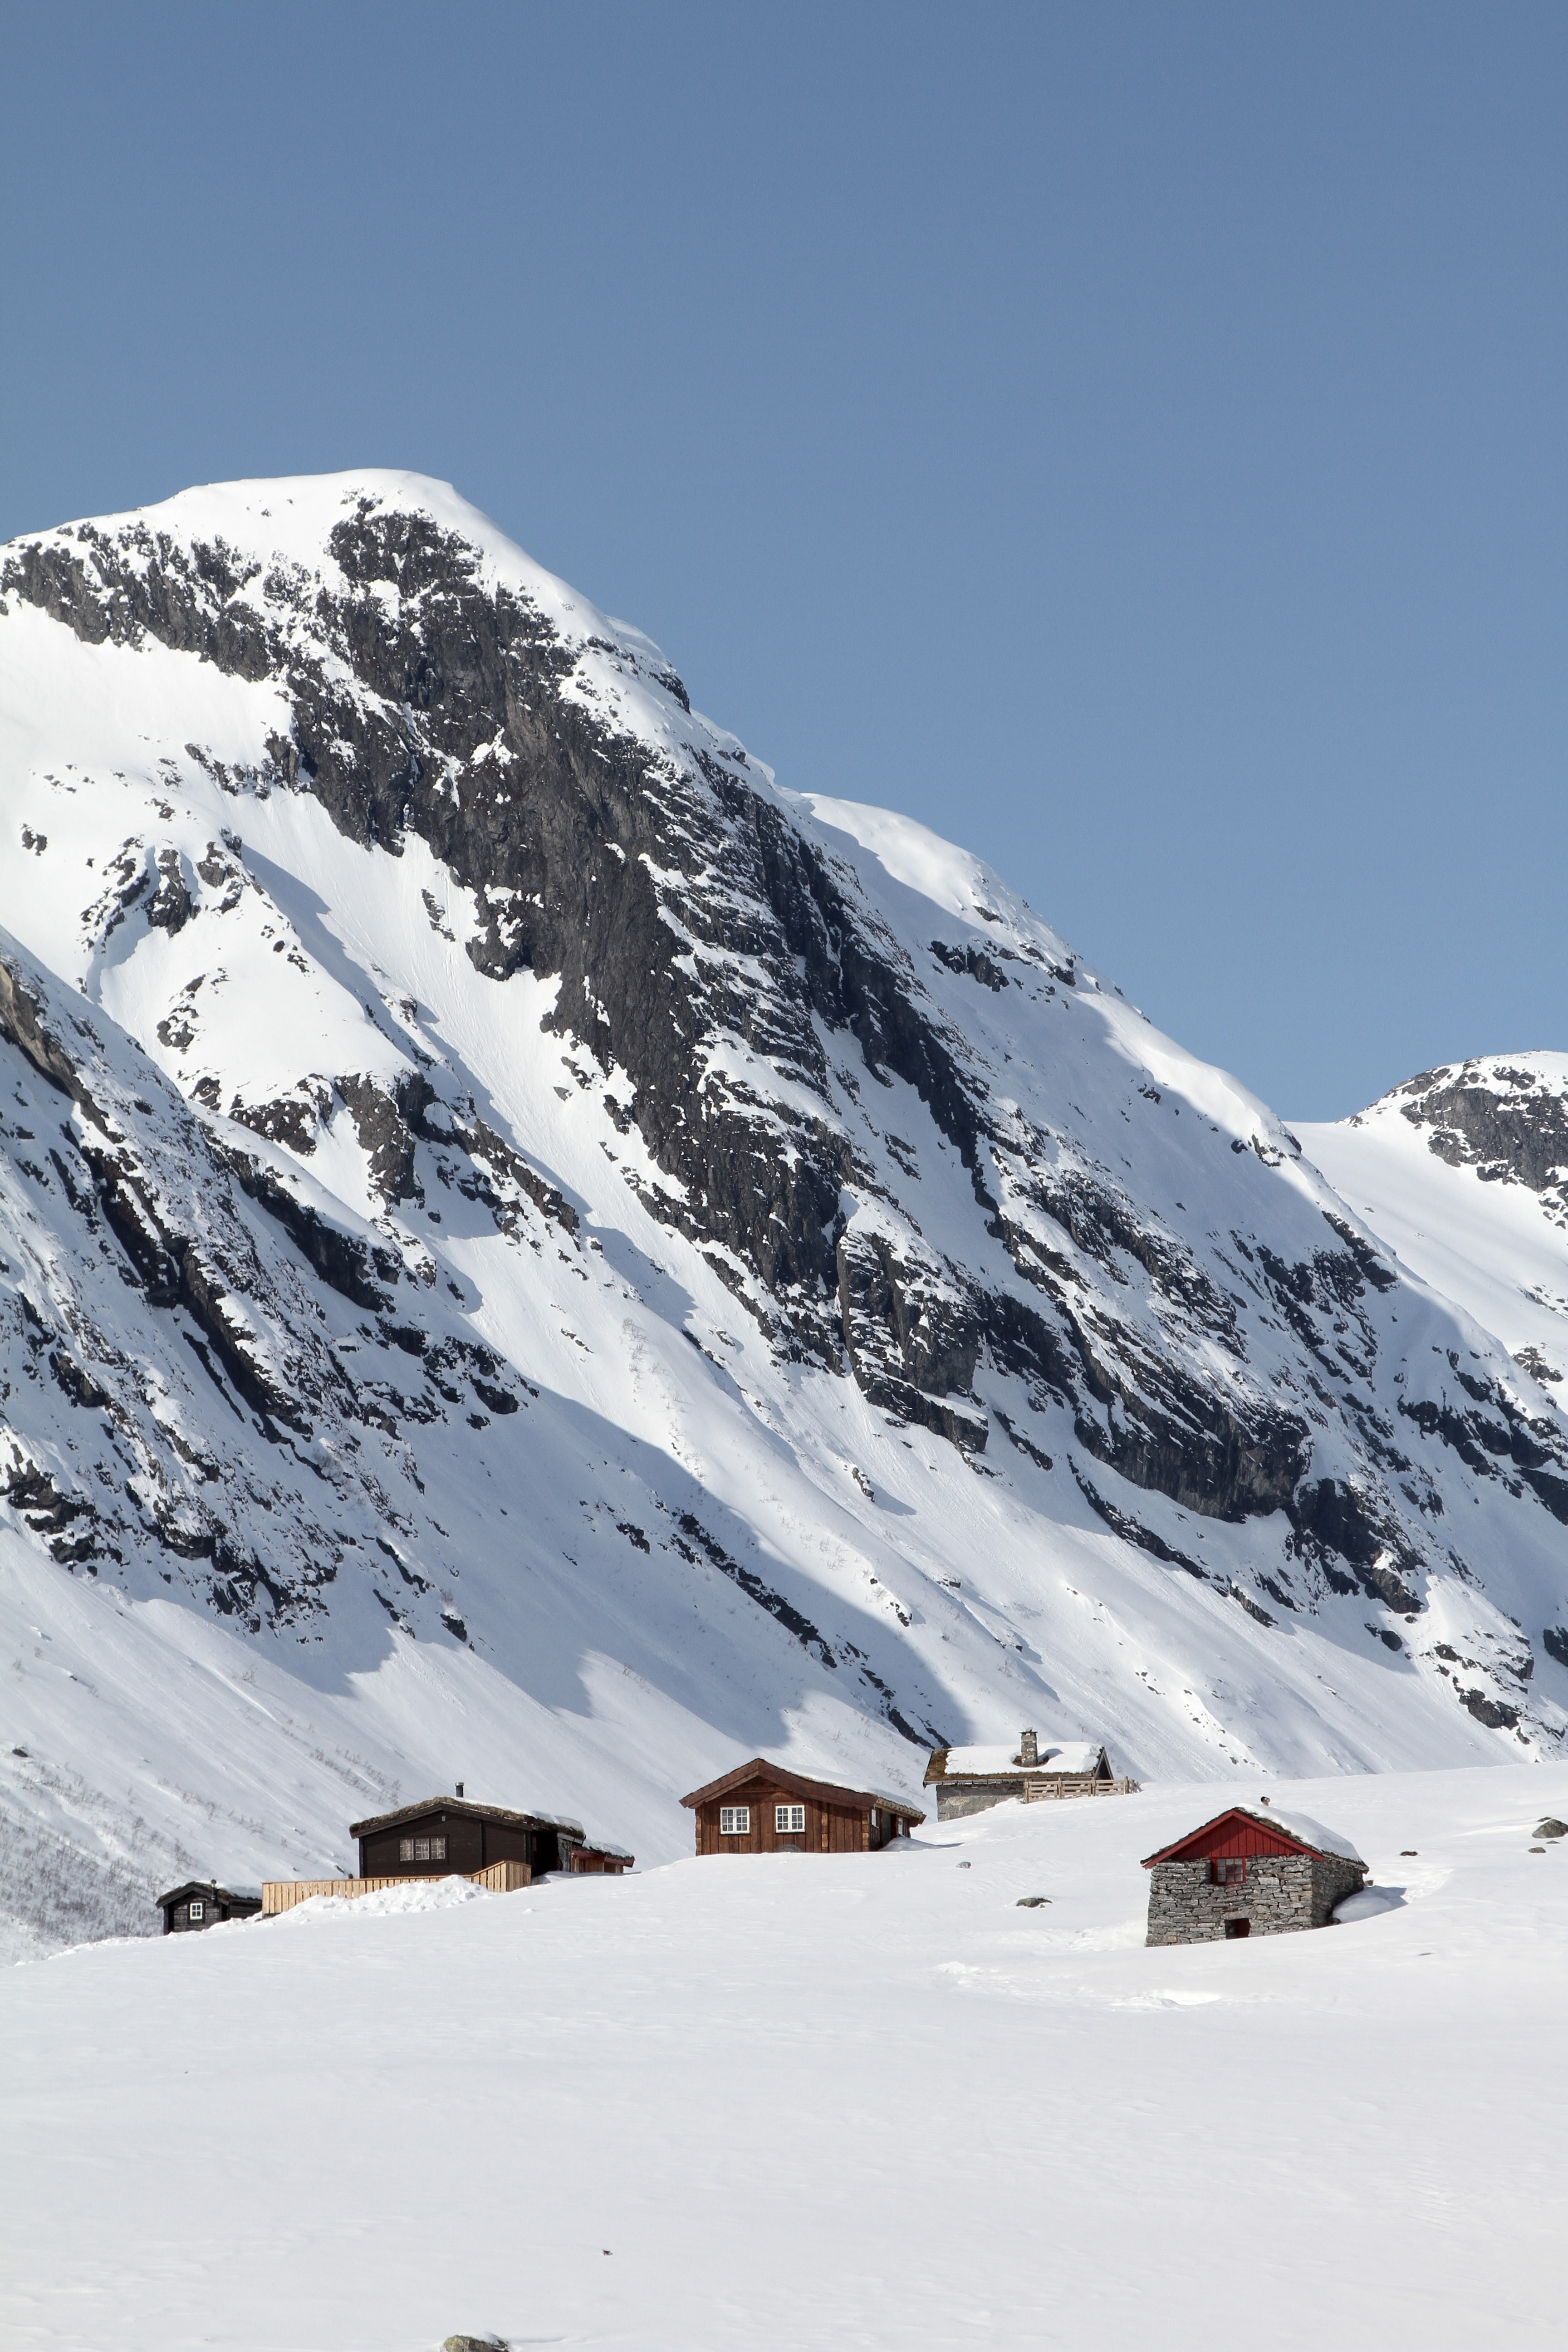 Houses at the top of a hill with snow capped mountains in the background and blue skies